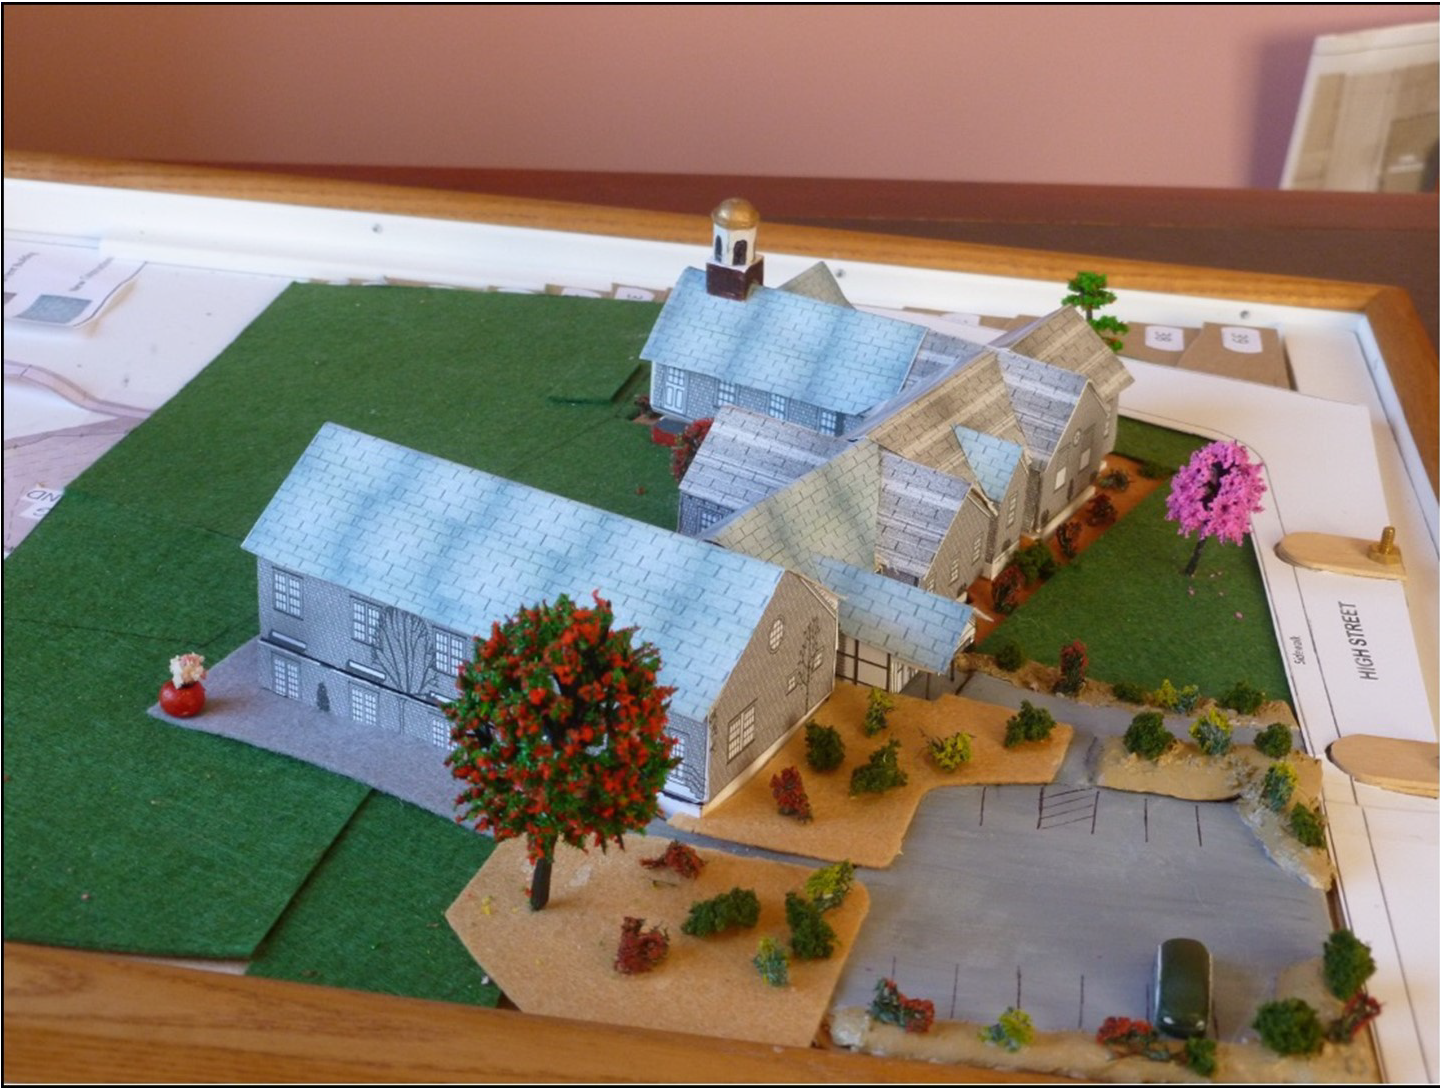 Diorama of church expansion